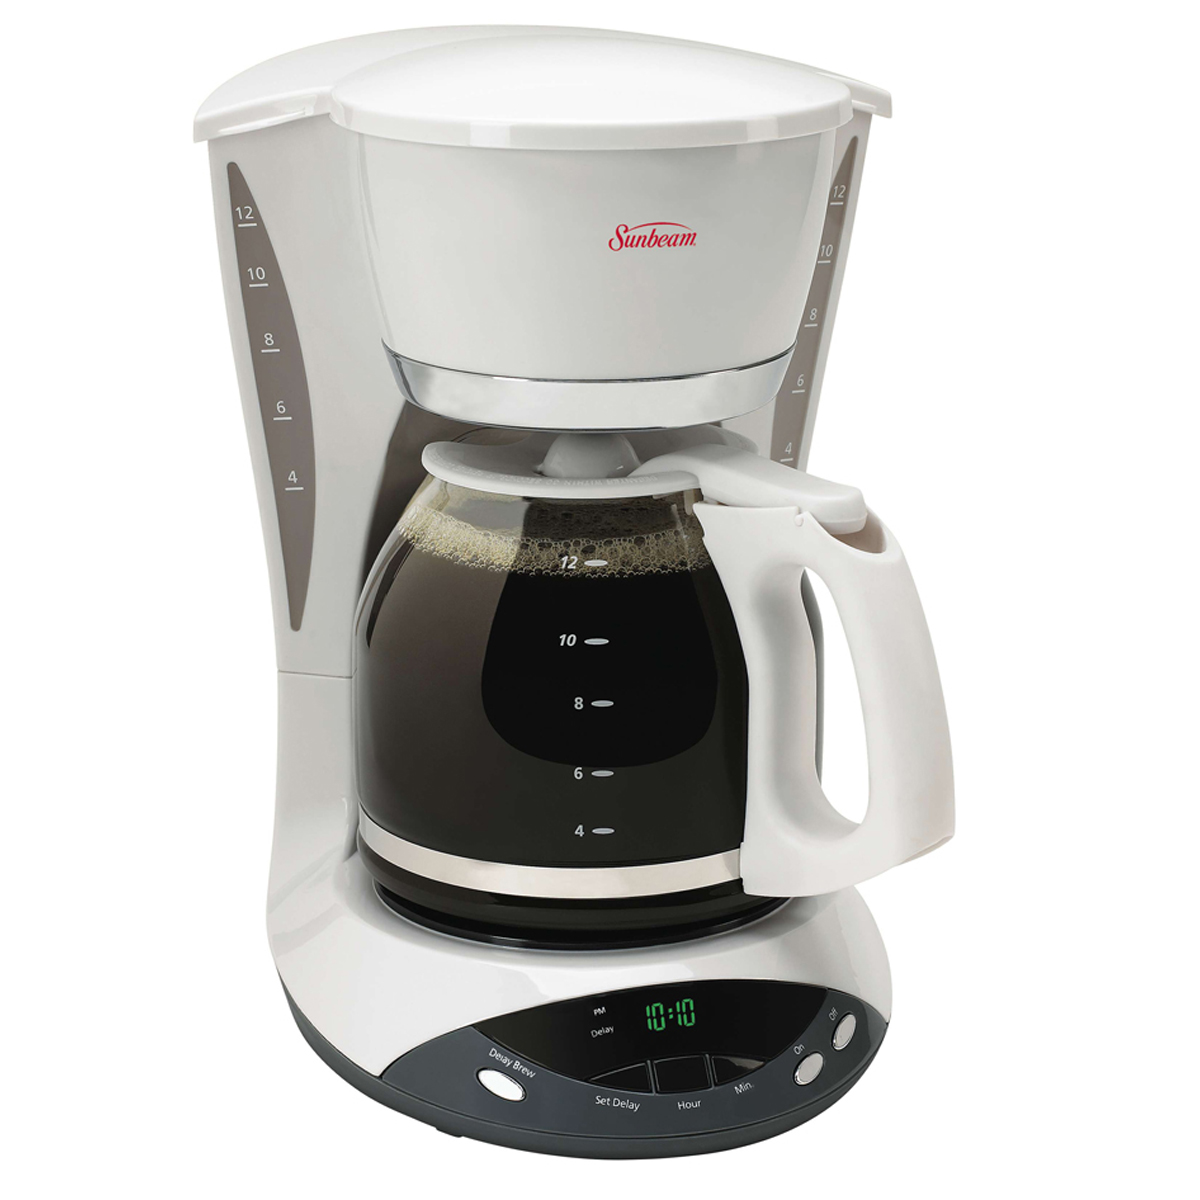 Sunbeam Percolator Coffee Maker : Sunbeam 12-Cup Programmable Coffeemaker, White 6101-33 Sunbeam Canada